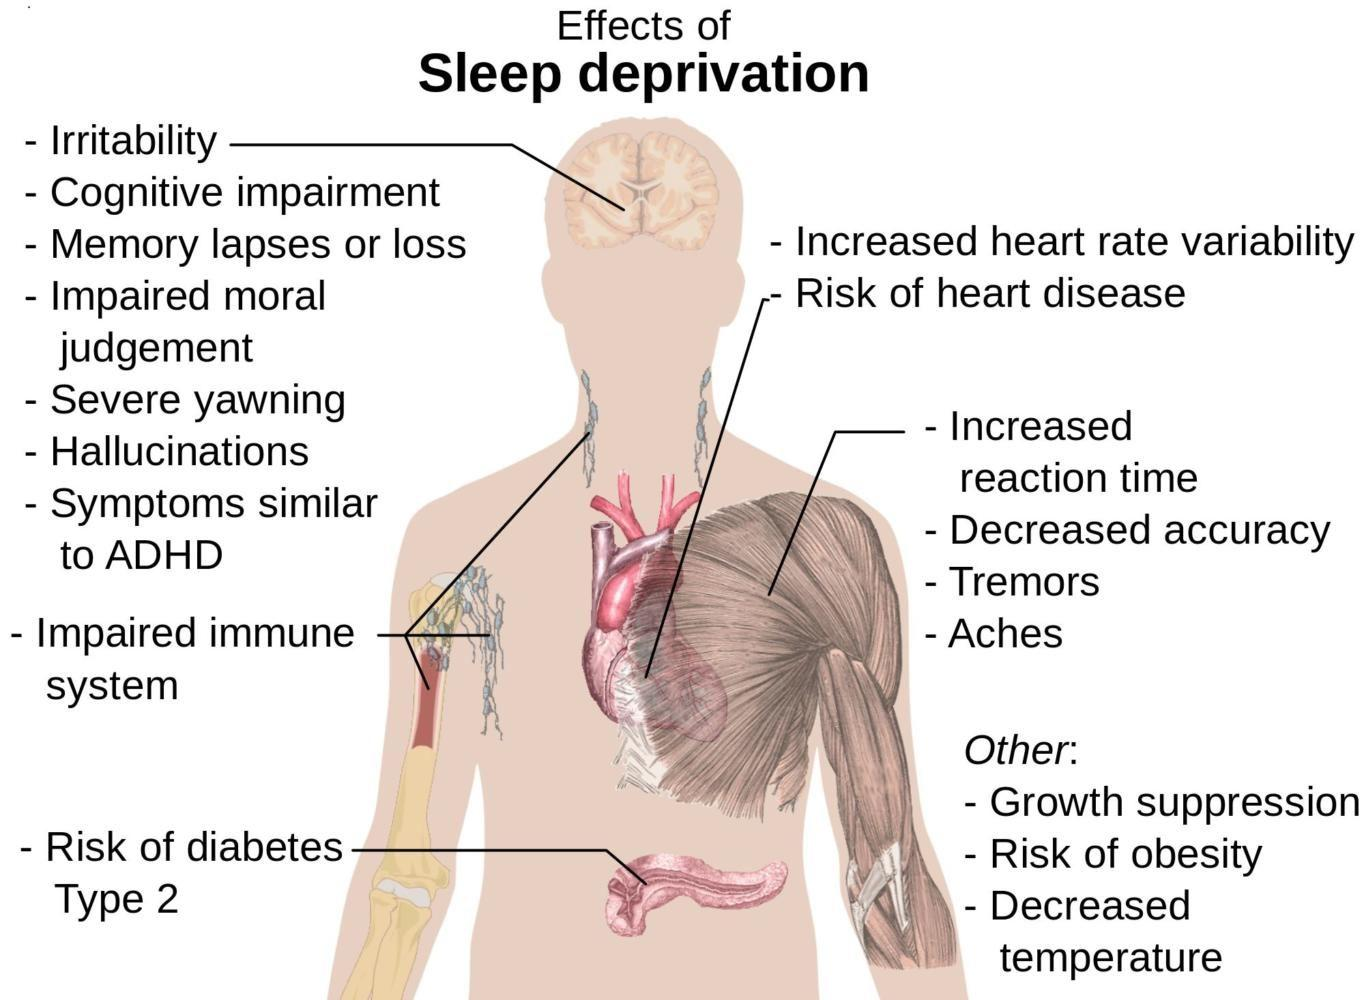 This+diagram+shows+the+several+scary+effects+that+prolonged+sleep+deprivation+can+have+on+individuals.+